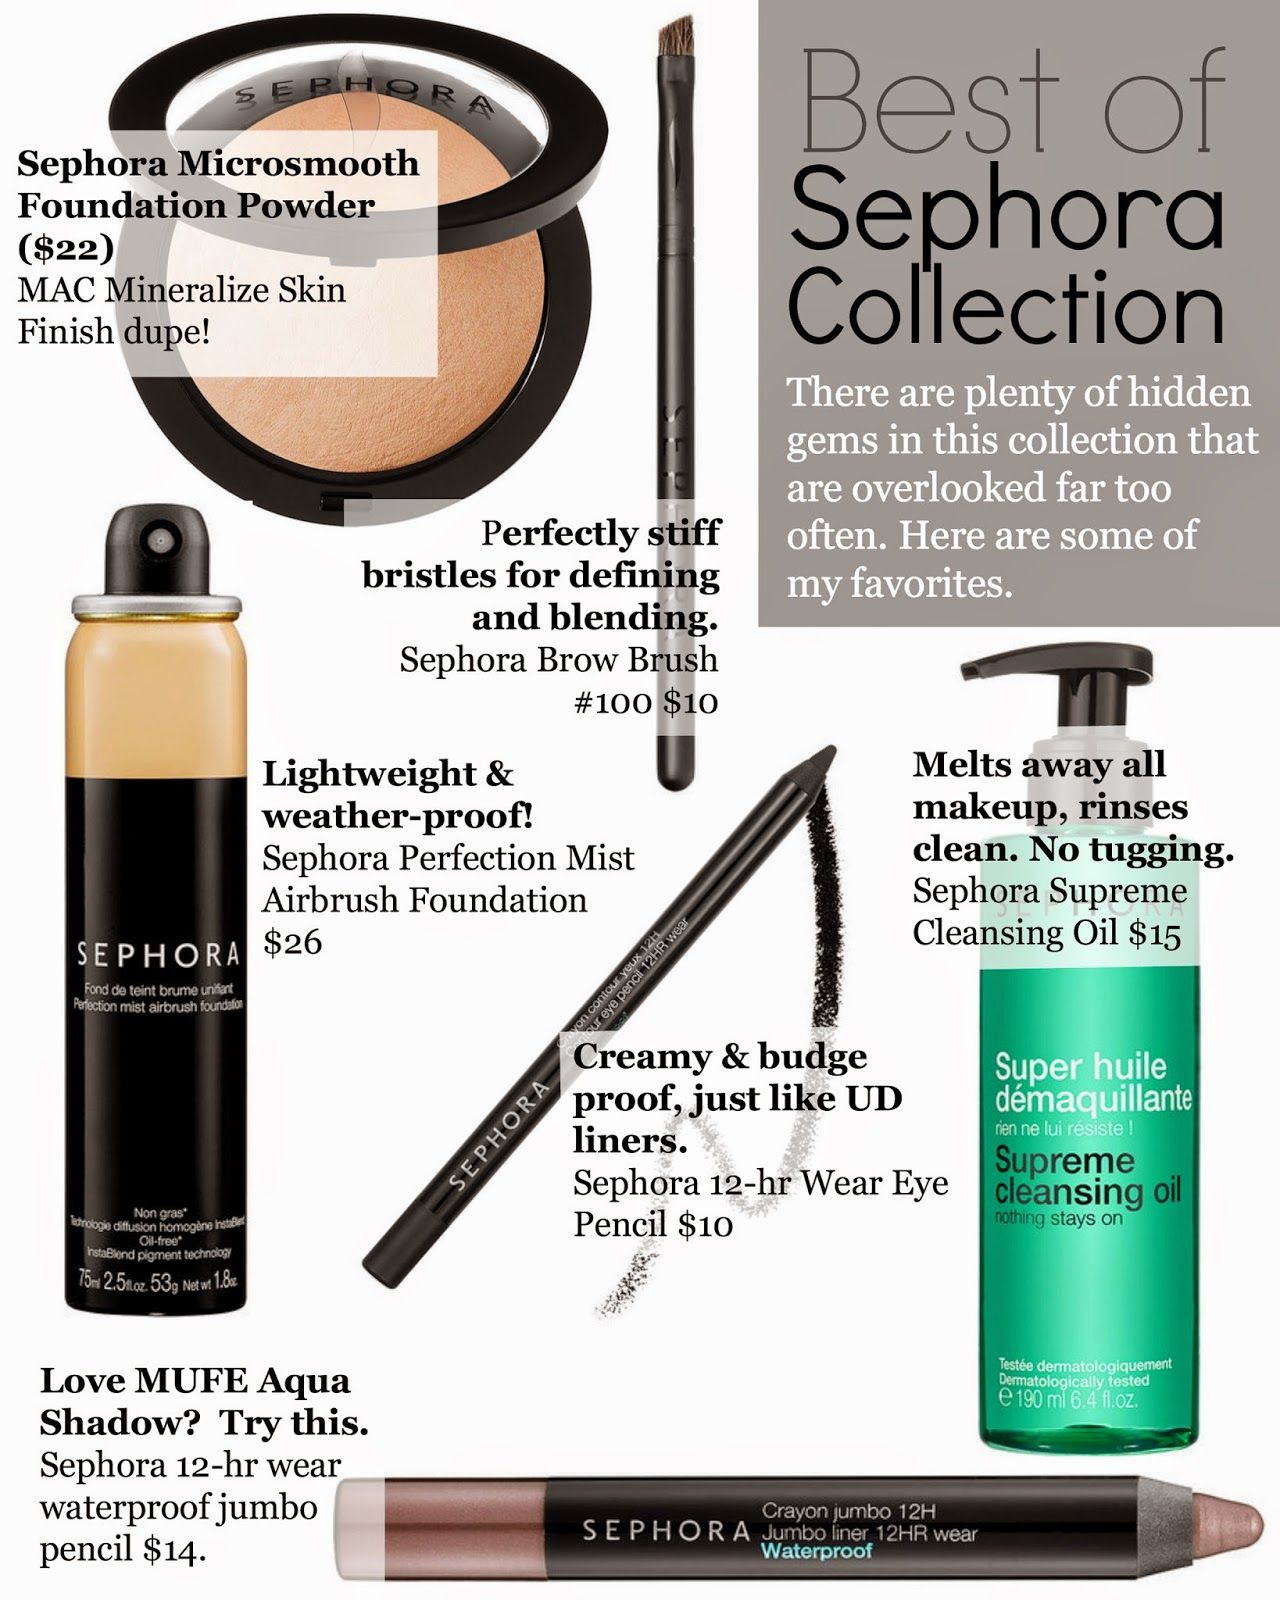 Best of Sephora Collection Products Sephora brands